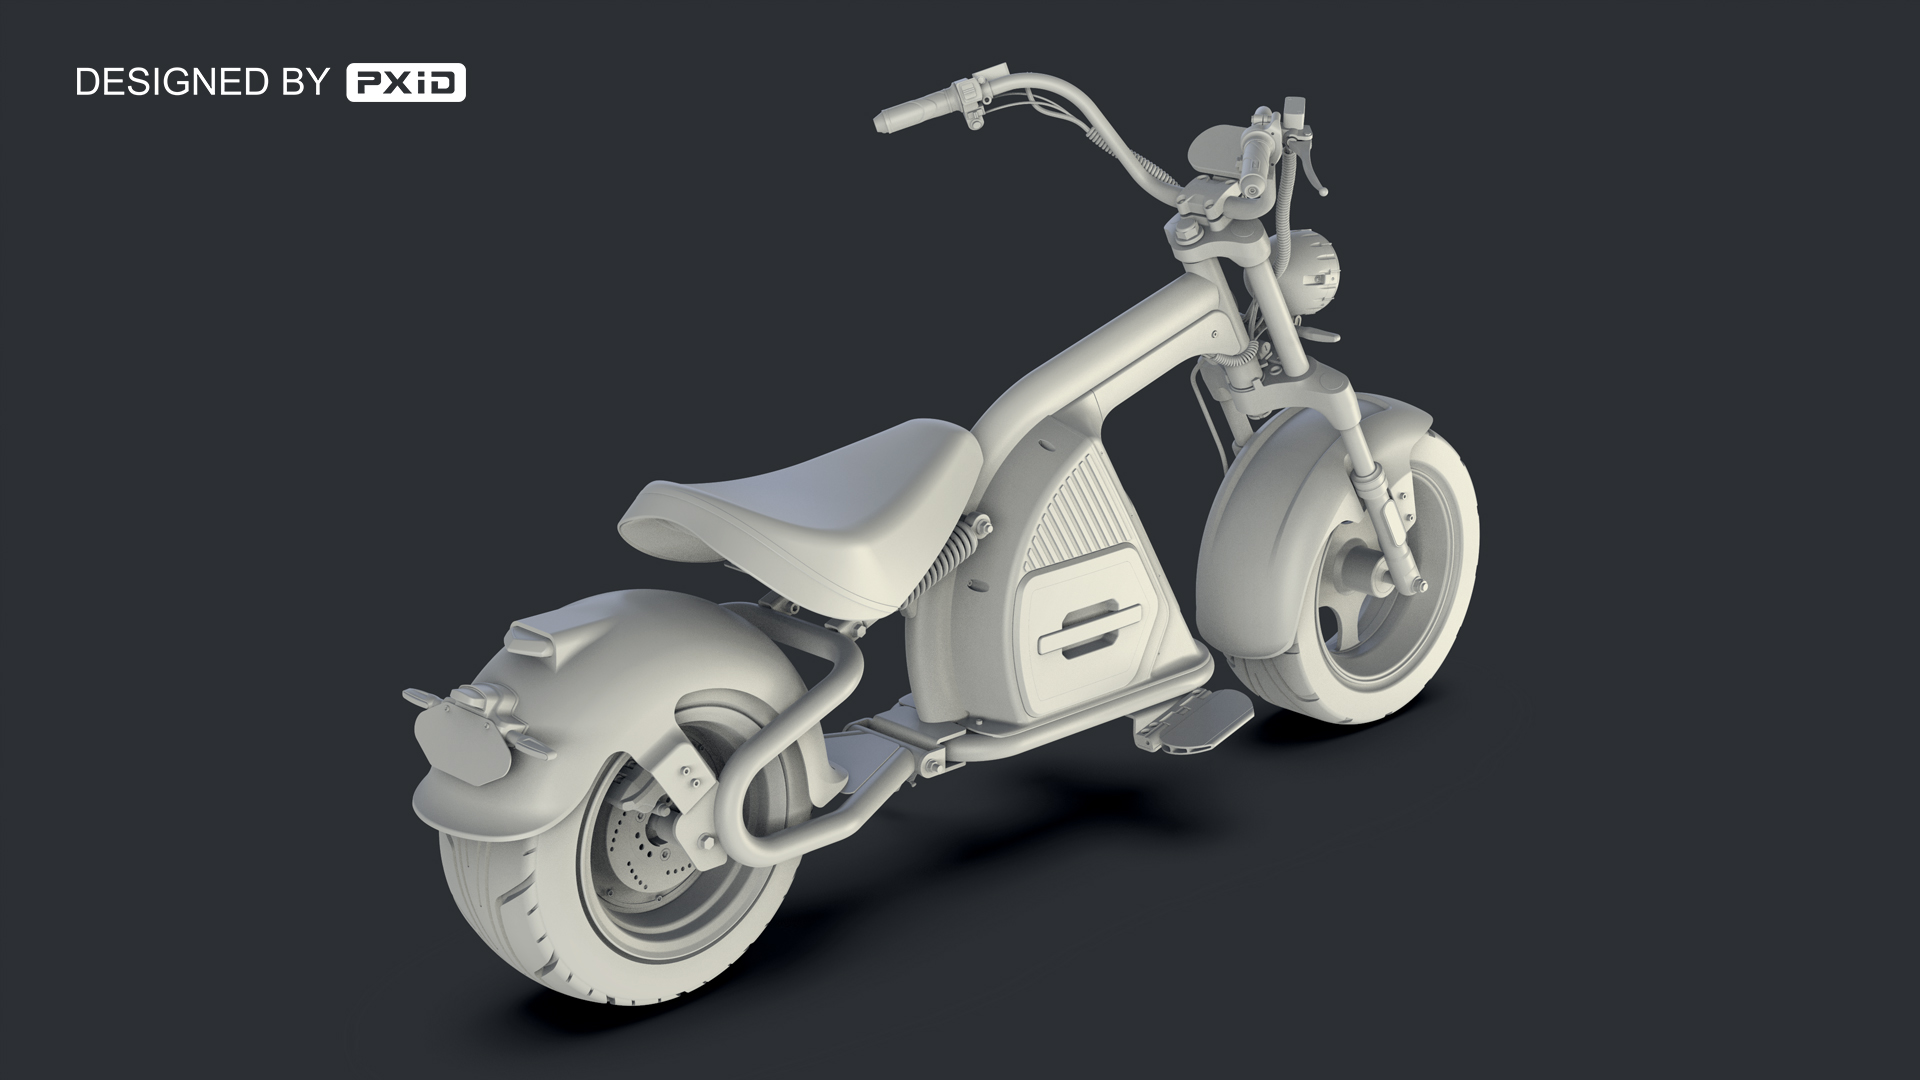 2020 new electric motorcycle design